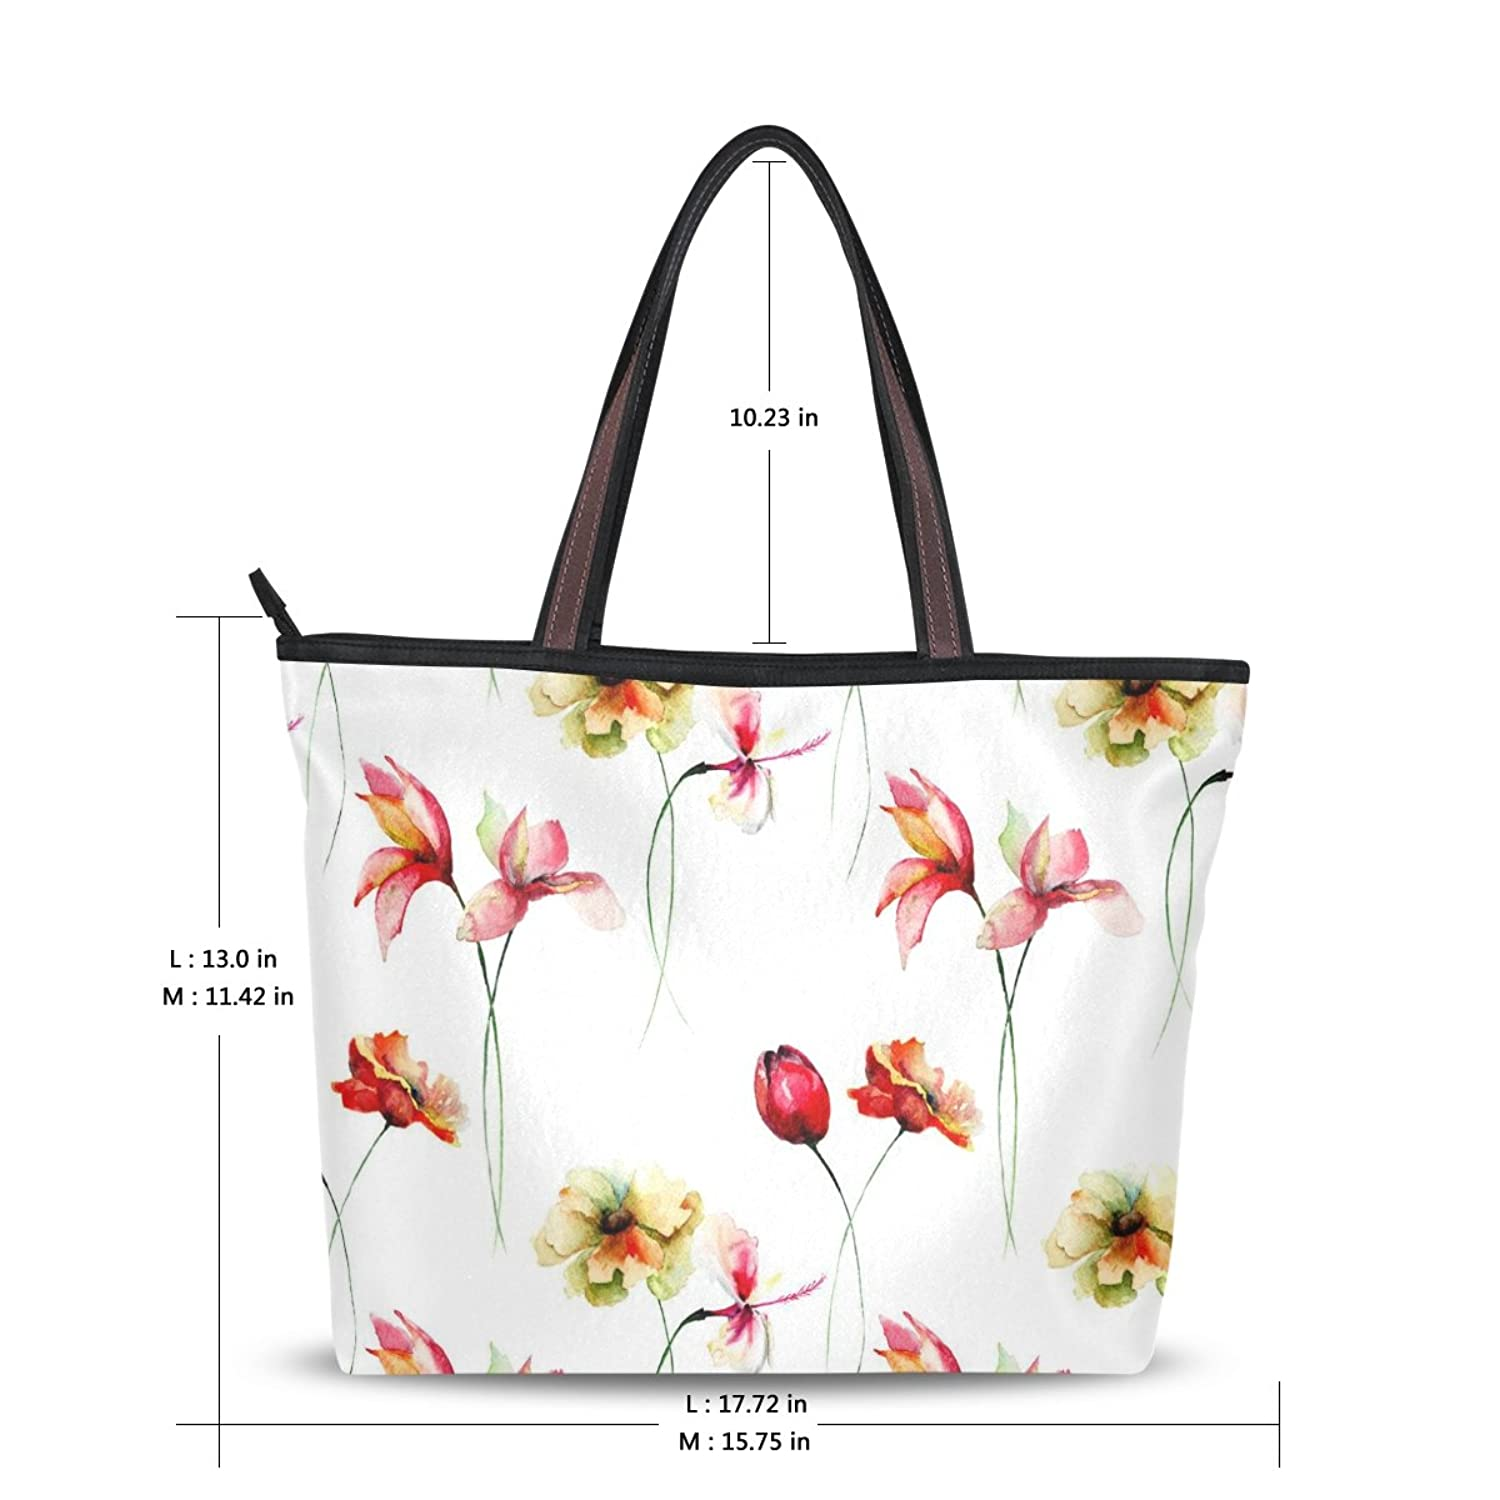 LEEZONE Women Fashion Microfiber Shoulder Handbags with Watercolor Flower Printing Tote Bags